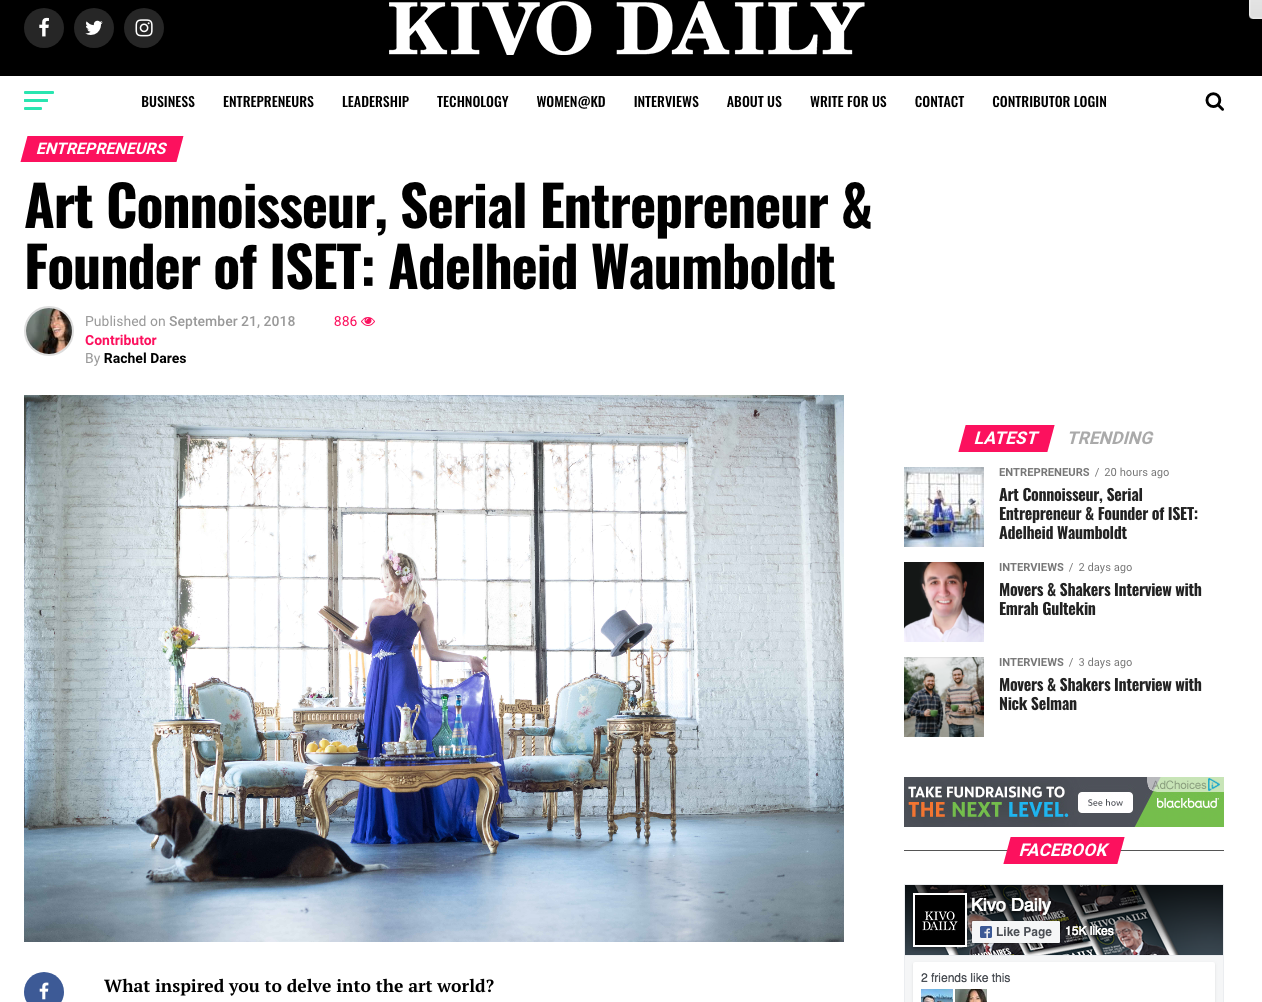 Kivo Daily with Adelheid Waumboldt